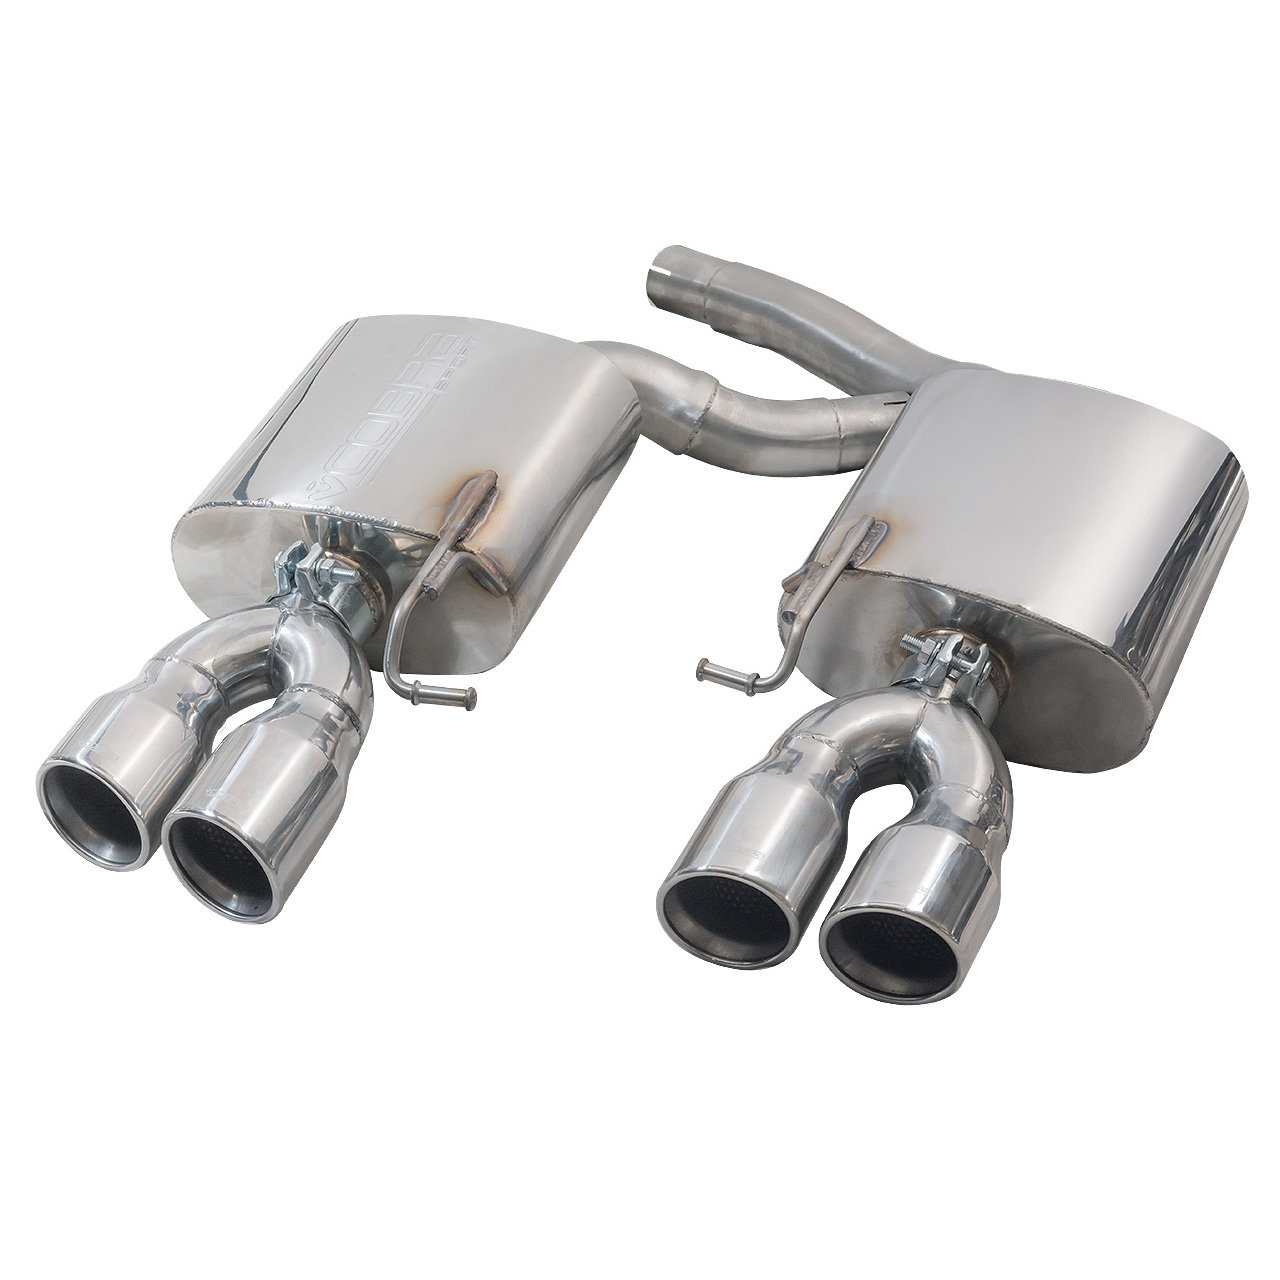 Audi S5 3.0 TFSI (B8/8.5) Coupe & Cabriolet Rear Box Section Performance Exhaust